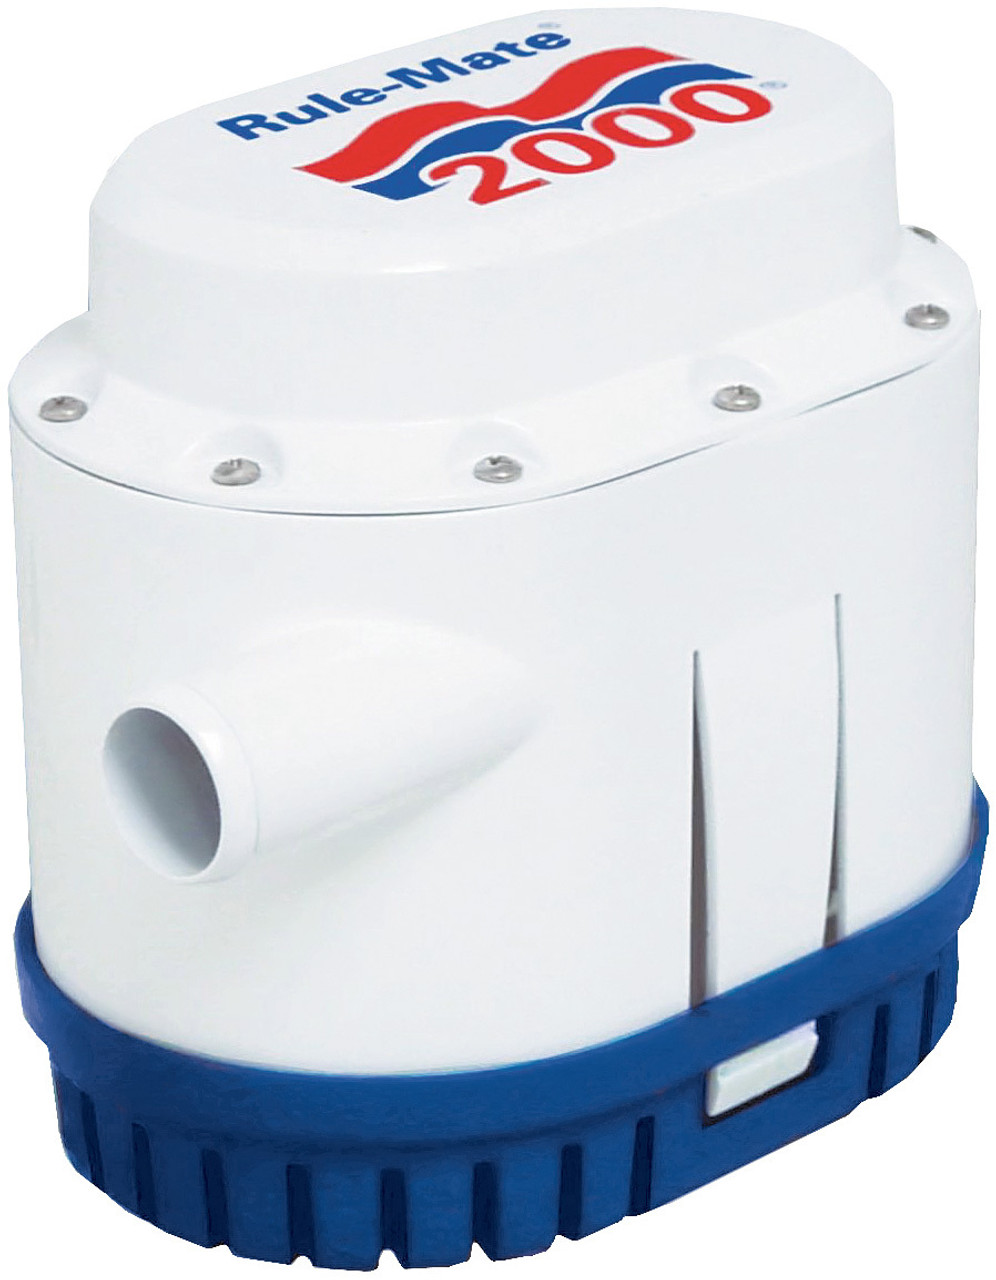 Bilge Pump 'Rule-Mate' Automatic 12v 2000GPH